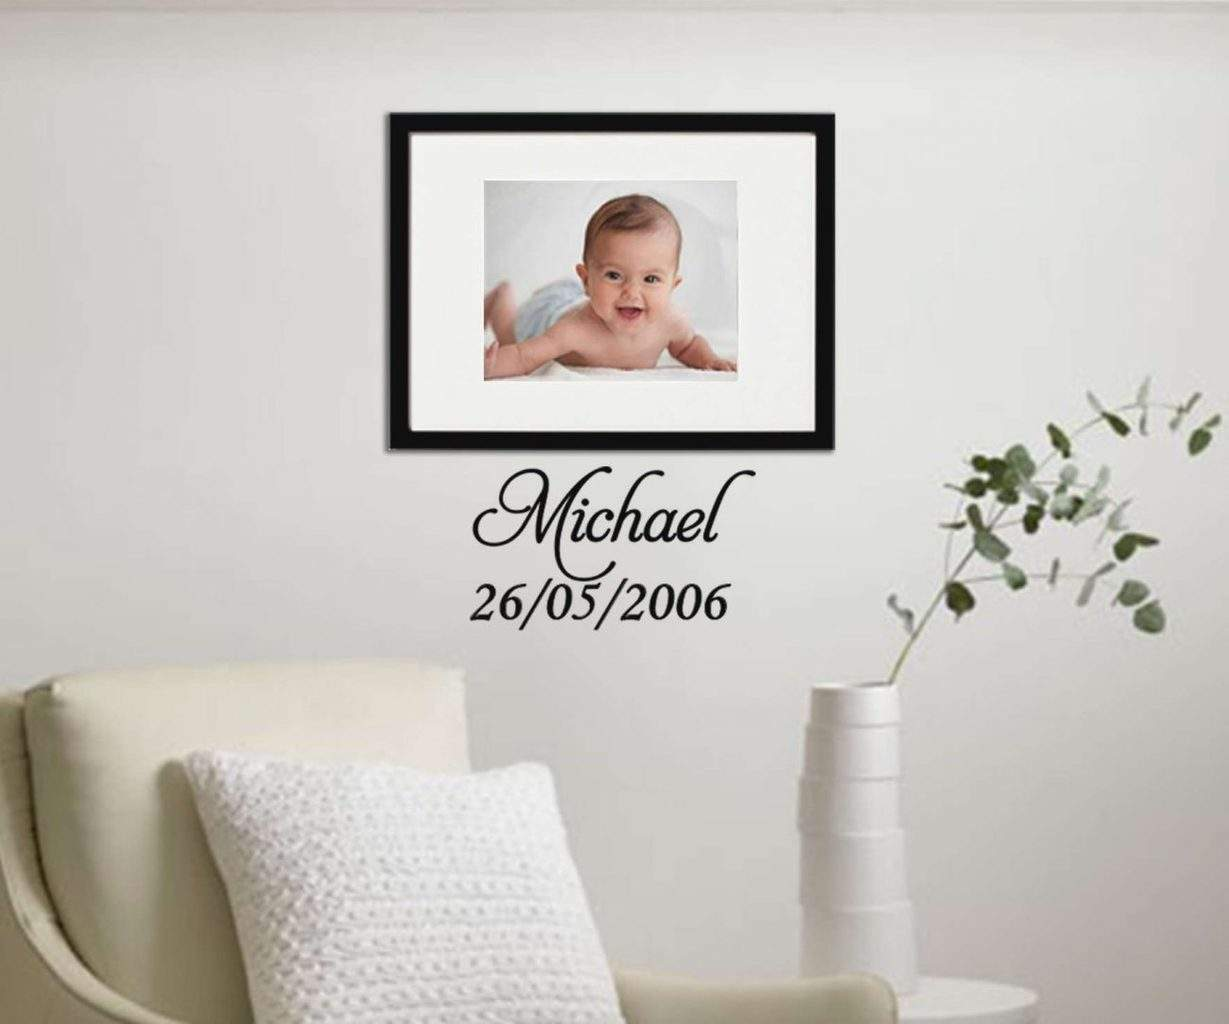 Personalised date of birth wall art decal sticker